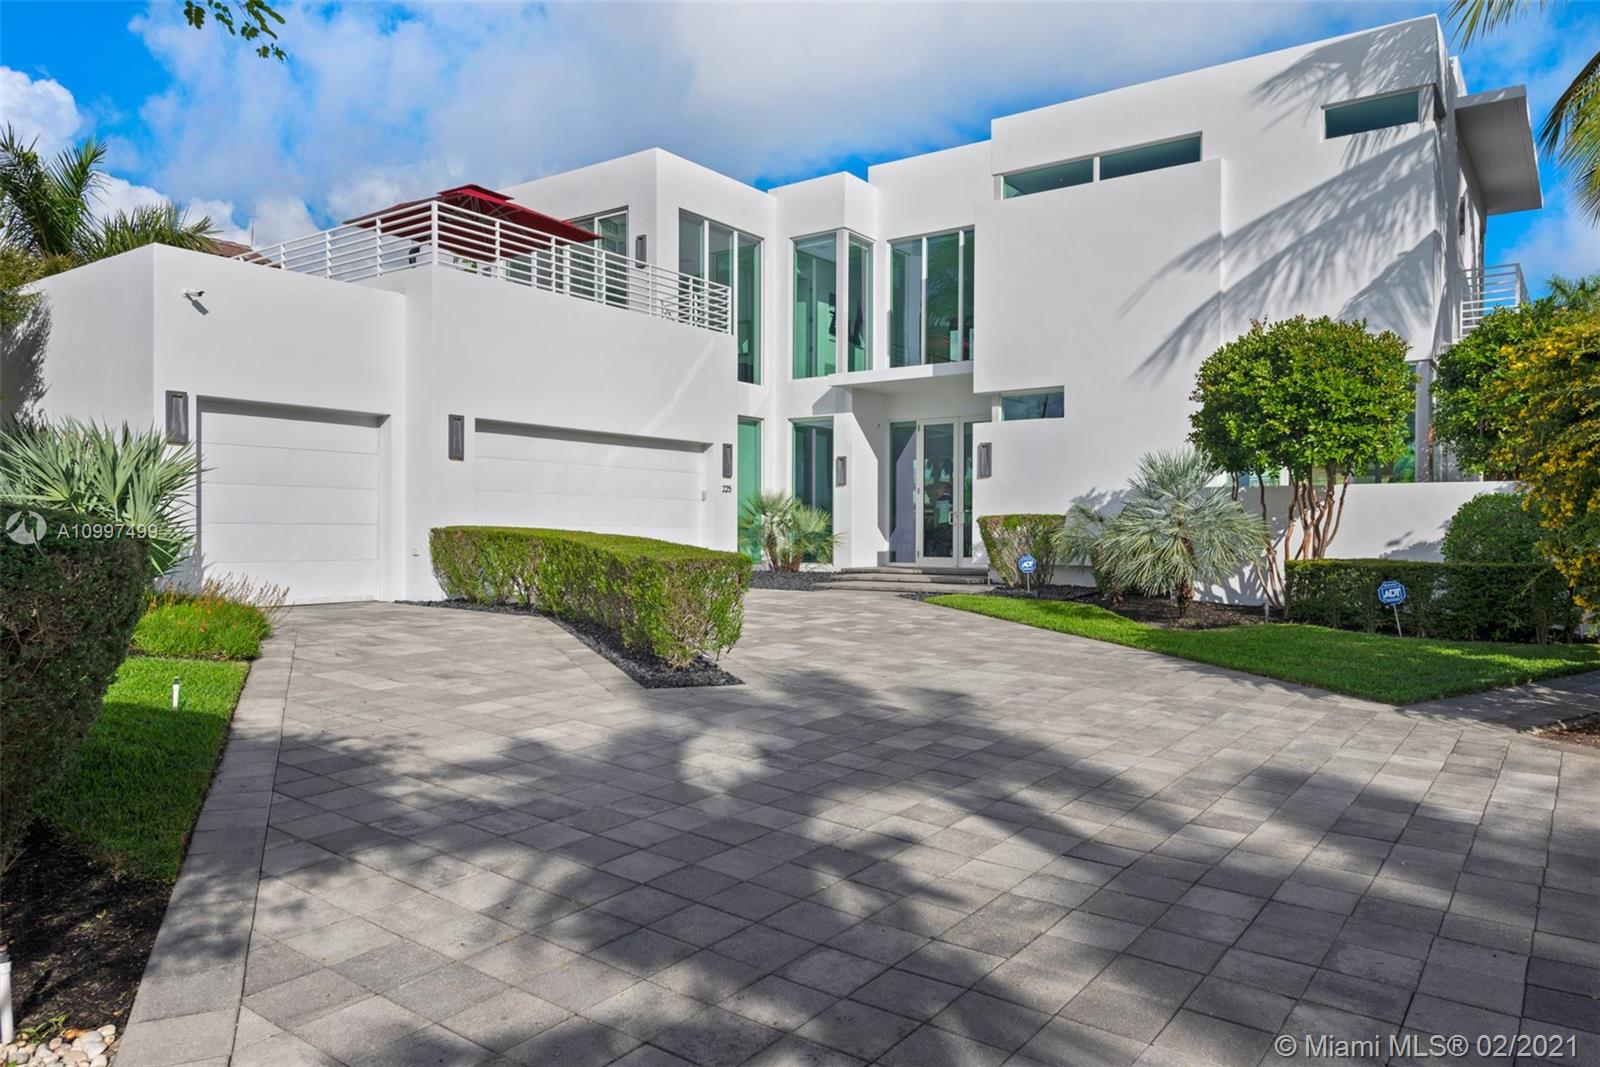 The Best of Everything! Tucked away where Las Olas crosses the Intracoastal waterway, this spectacular home offers it all. This unique location offers an easy walk to the beach, shops and restaurants of Las Olas Boulevard. This house is a modern masterpiece, featuring an open floor plan for entertaining and active lifestyles.The new owners will enjoy 105' feet of deep water frontage, new boat lift platform rated at 40,000 lbs. The waterfront pool & patio will delight family and friends. This unique property is a MUST SEE for the discerning buyer.